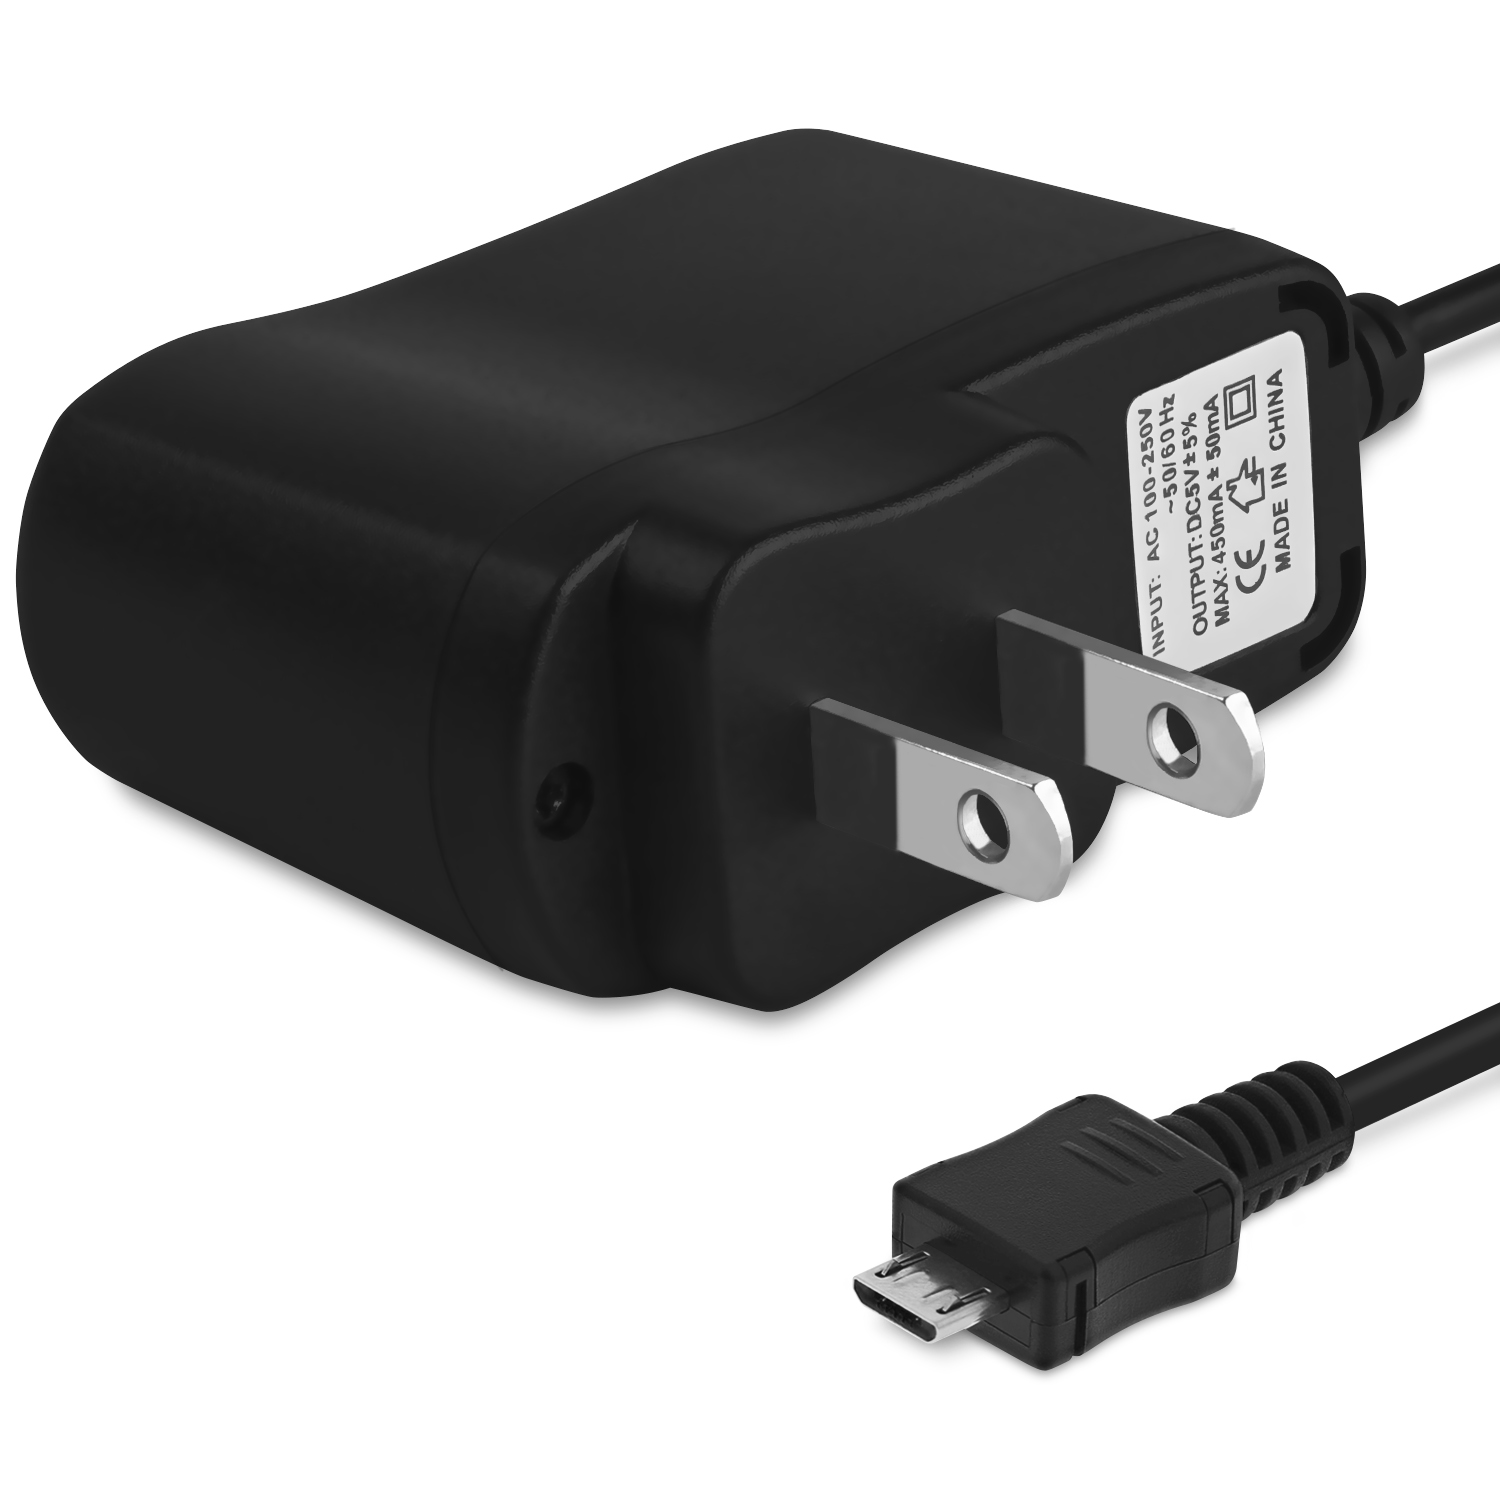 Micro USB Wall Charger, Fosmon AC Power Adapter Micro-B Travel for Samsung Galaxy S7 Edge / S7 / Note 5 / Edge, Motorola, HTC, LG, Alcatel, Blu and more